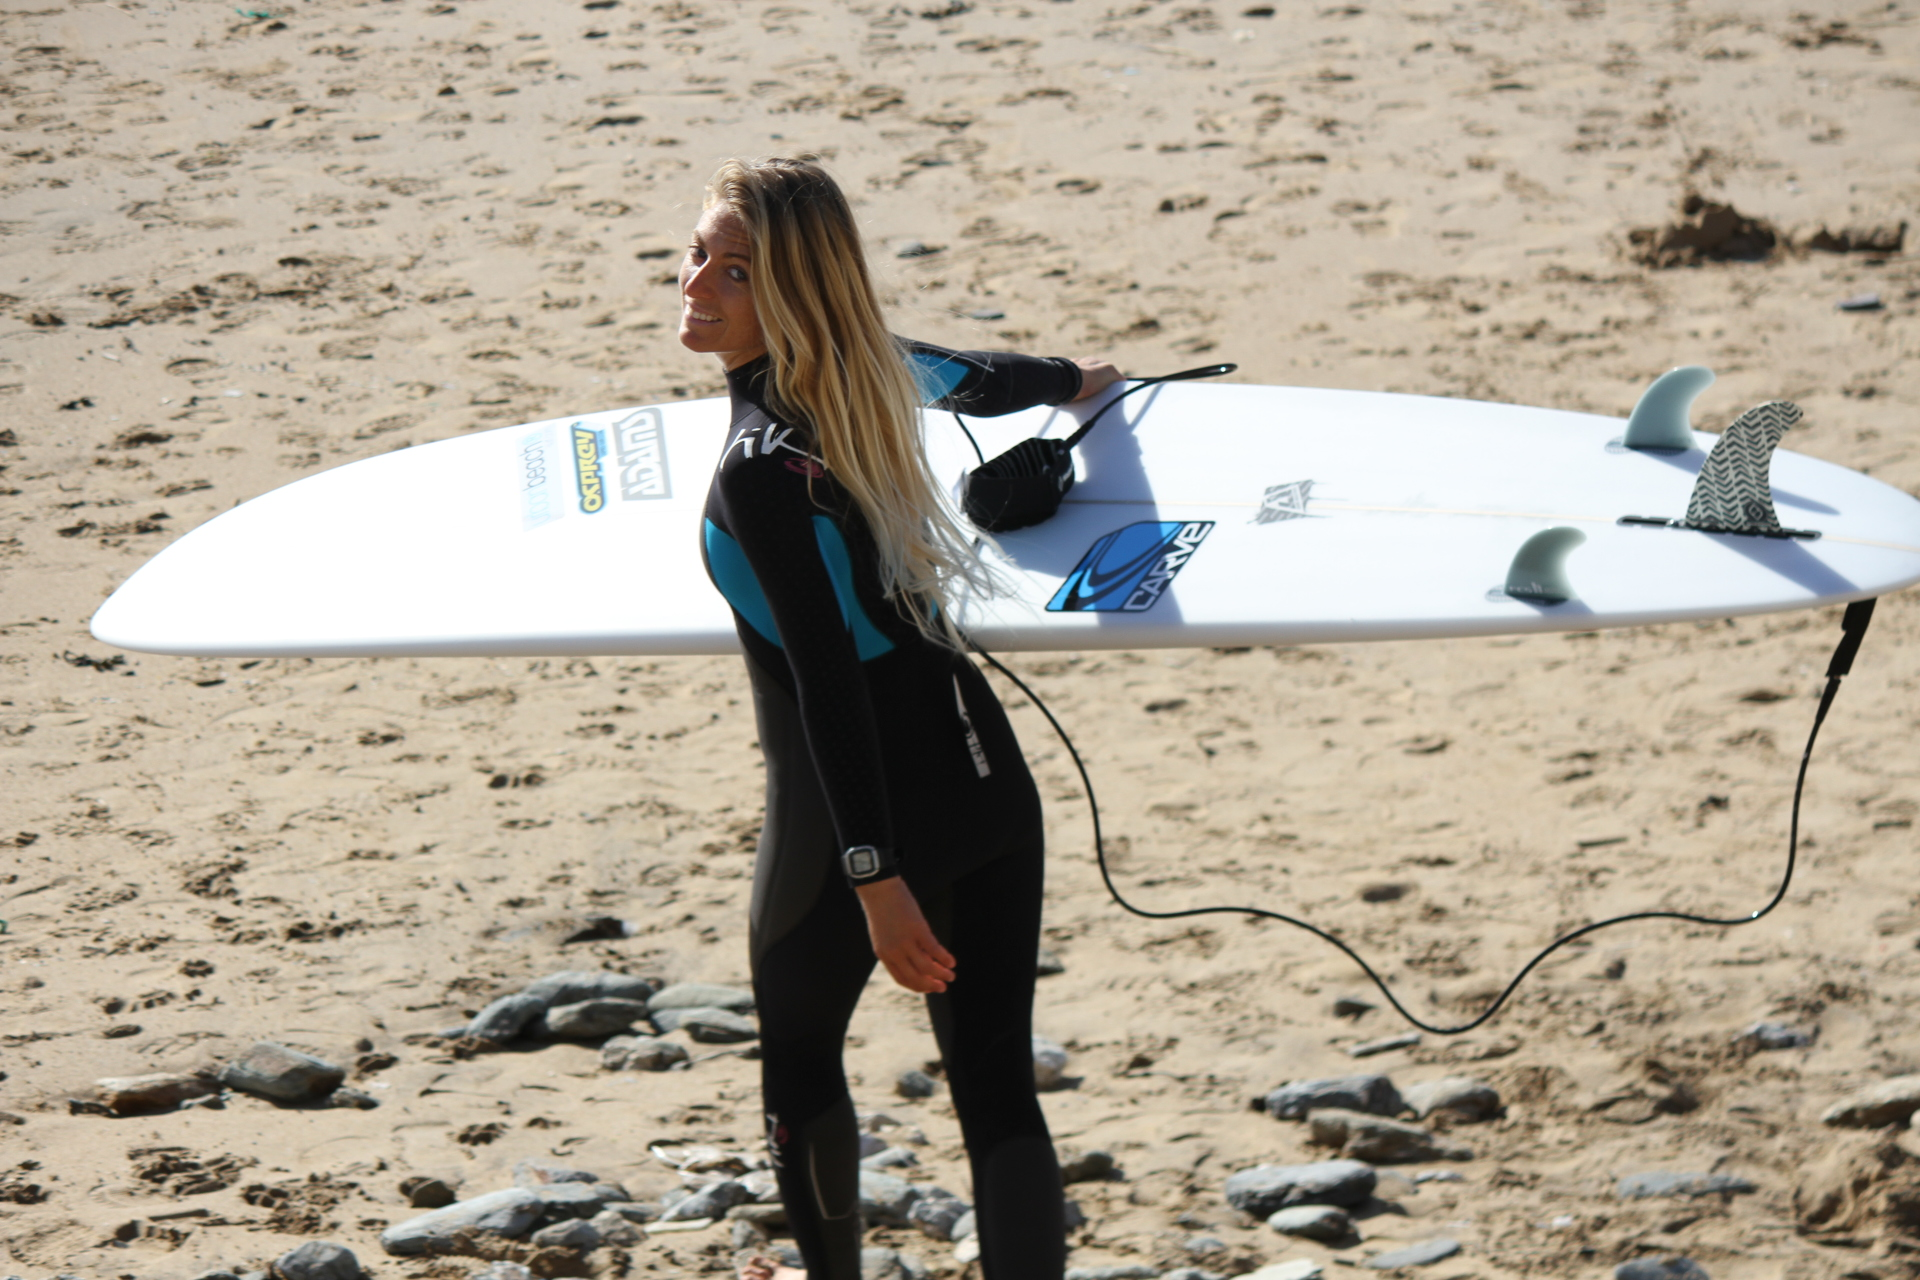 How to surf in the UK, Tehillah McGuinness, Pro surfer, sports model, the worlds best surf spots, womens health magazine, health, fitness, workouts, travel, surfing, surfer girl, south African born pro surfer, the face of the new MINI Countryman